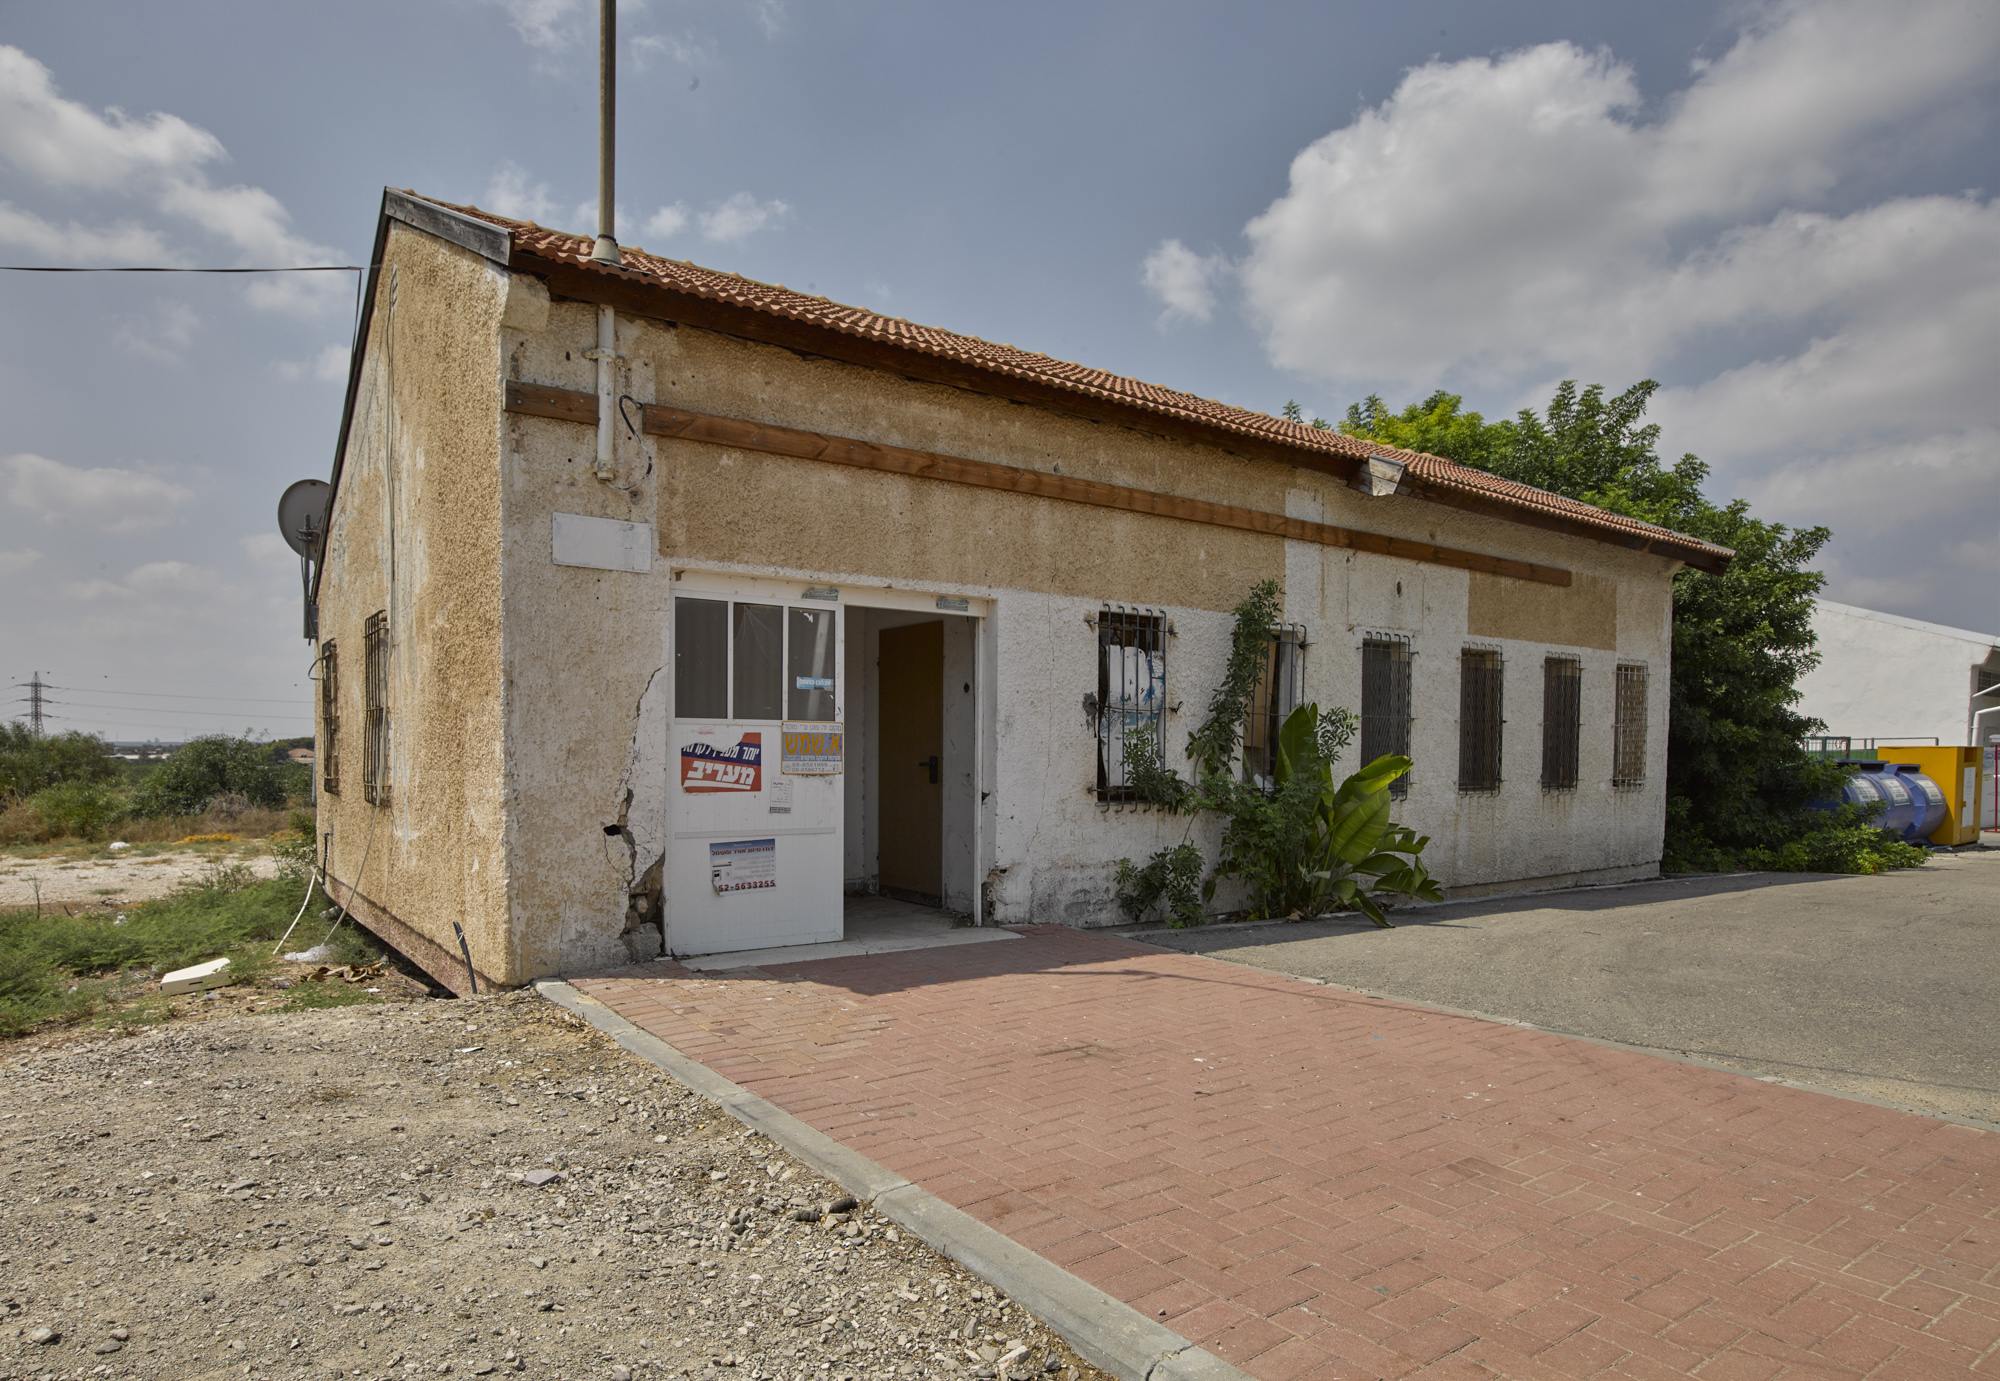 Supermarket - Kfar Ha'rif, August 2016